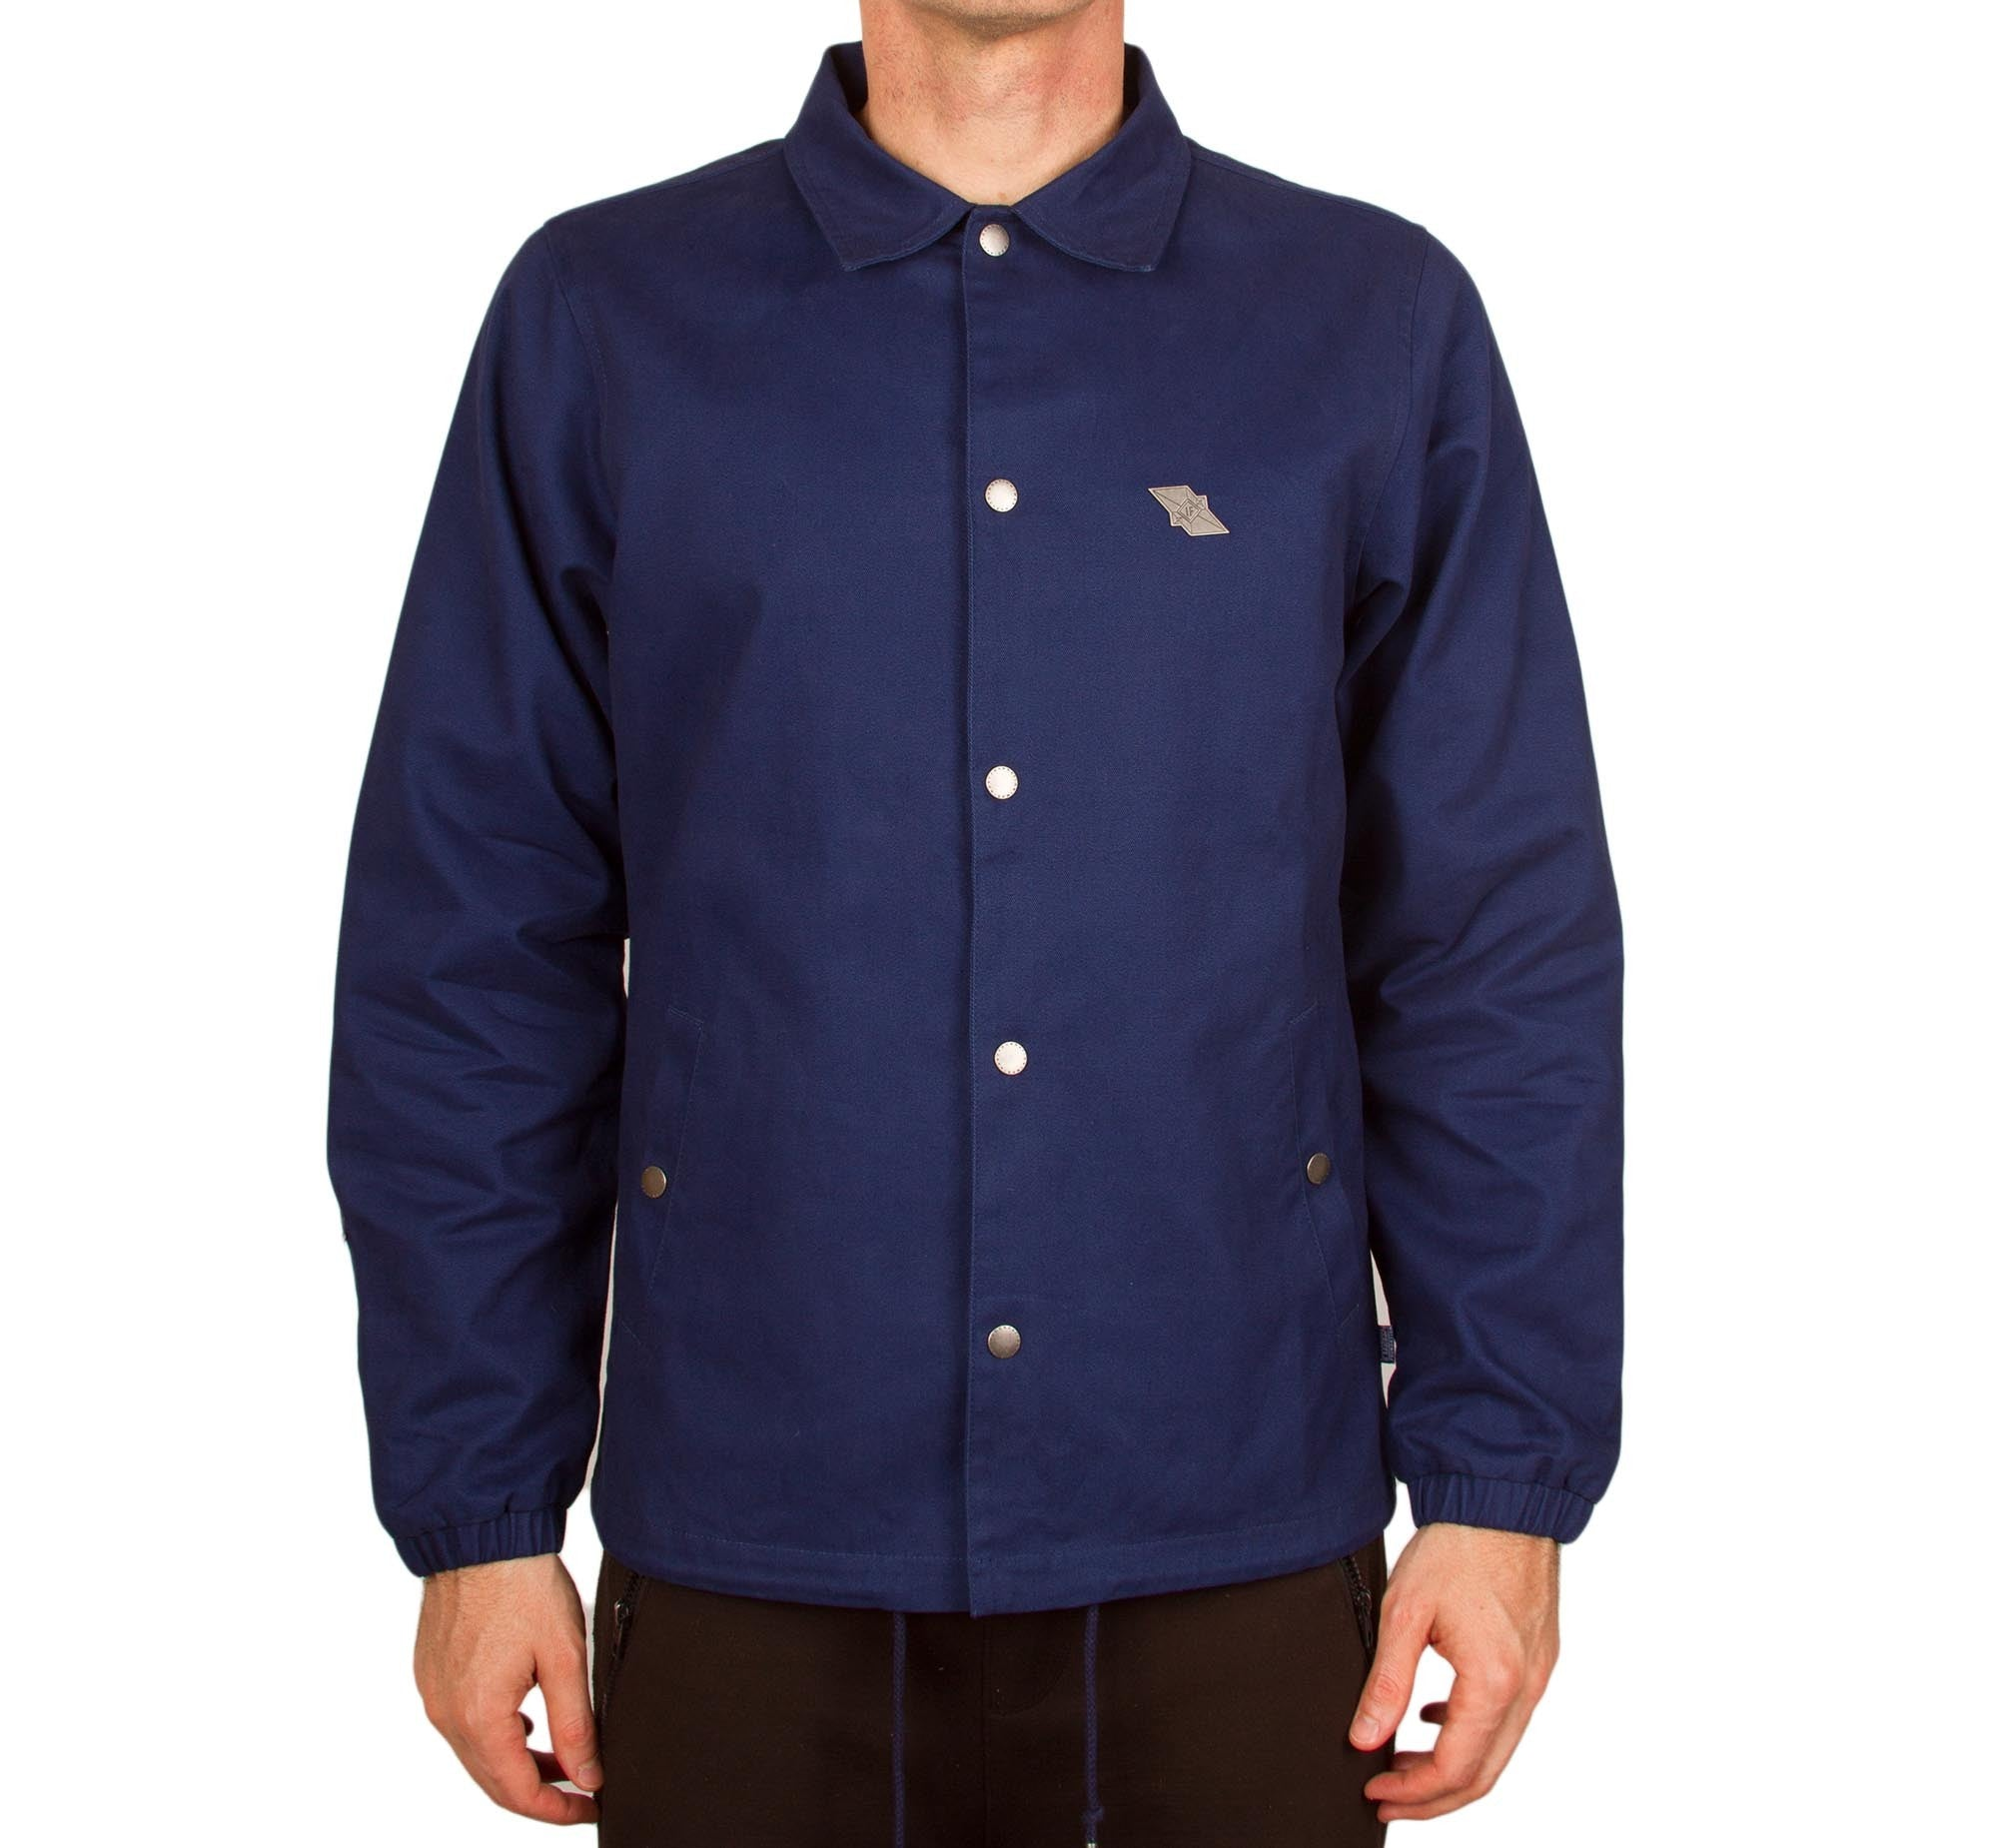 Ultraverse Jacket Blue